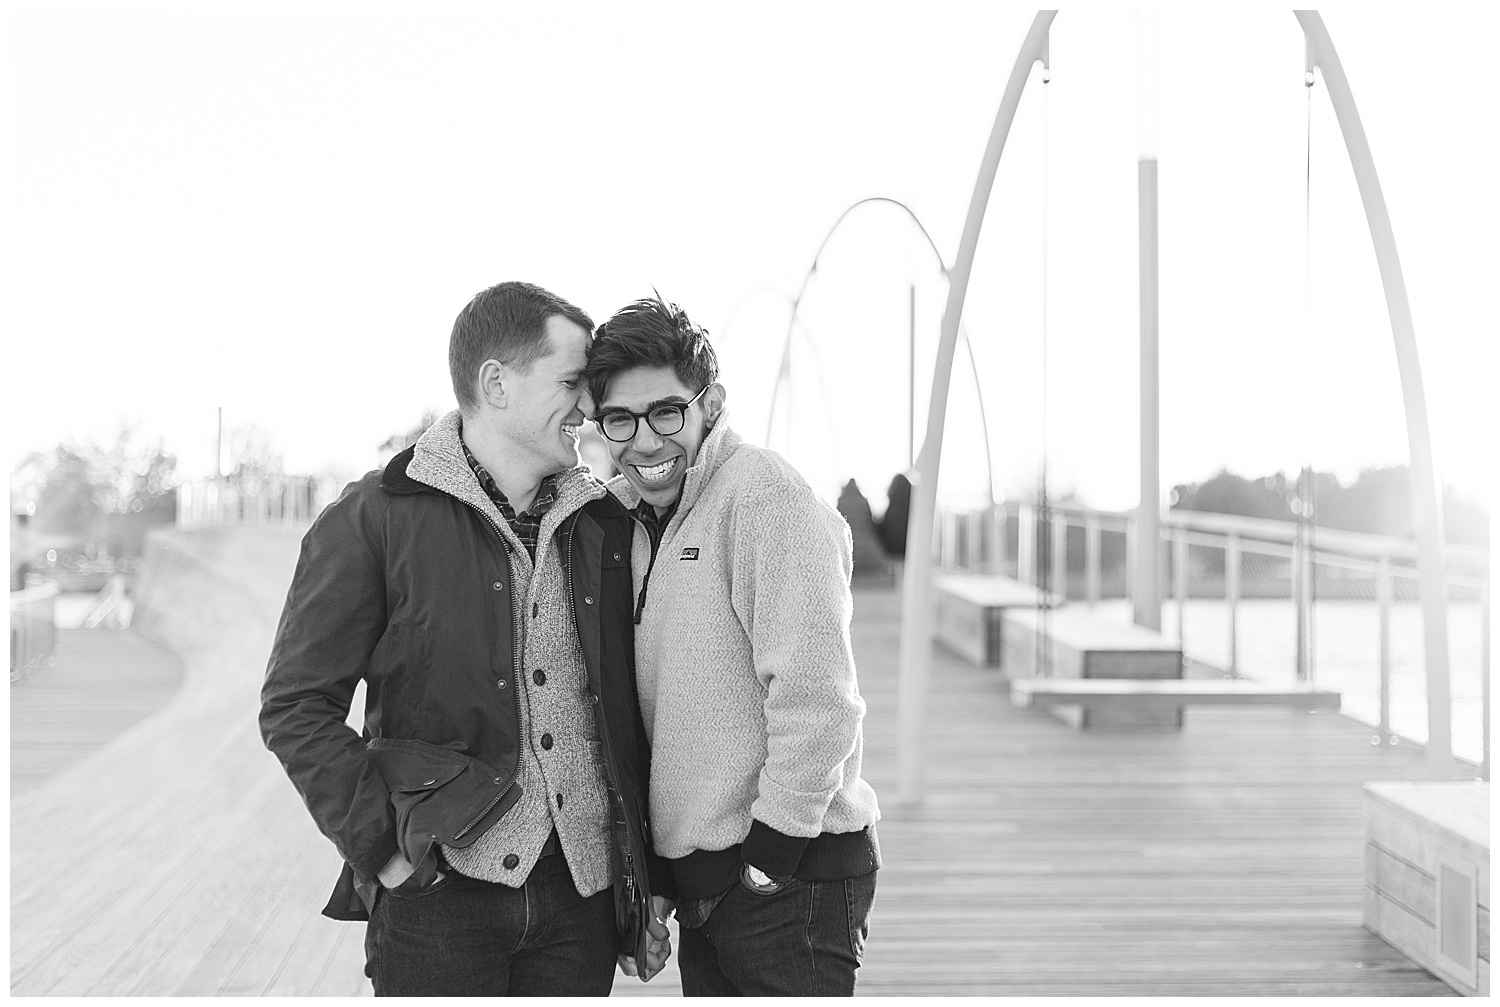 dc-wharf-engagement-emily-belson-photography-02.jpg